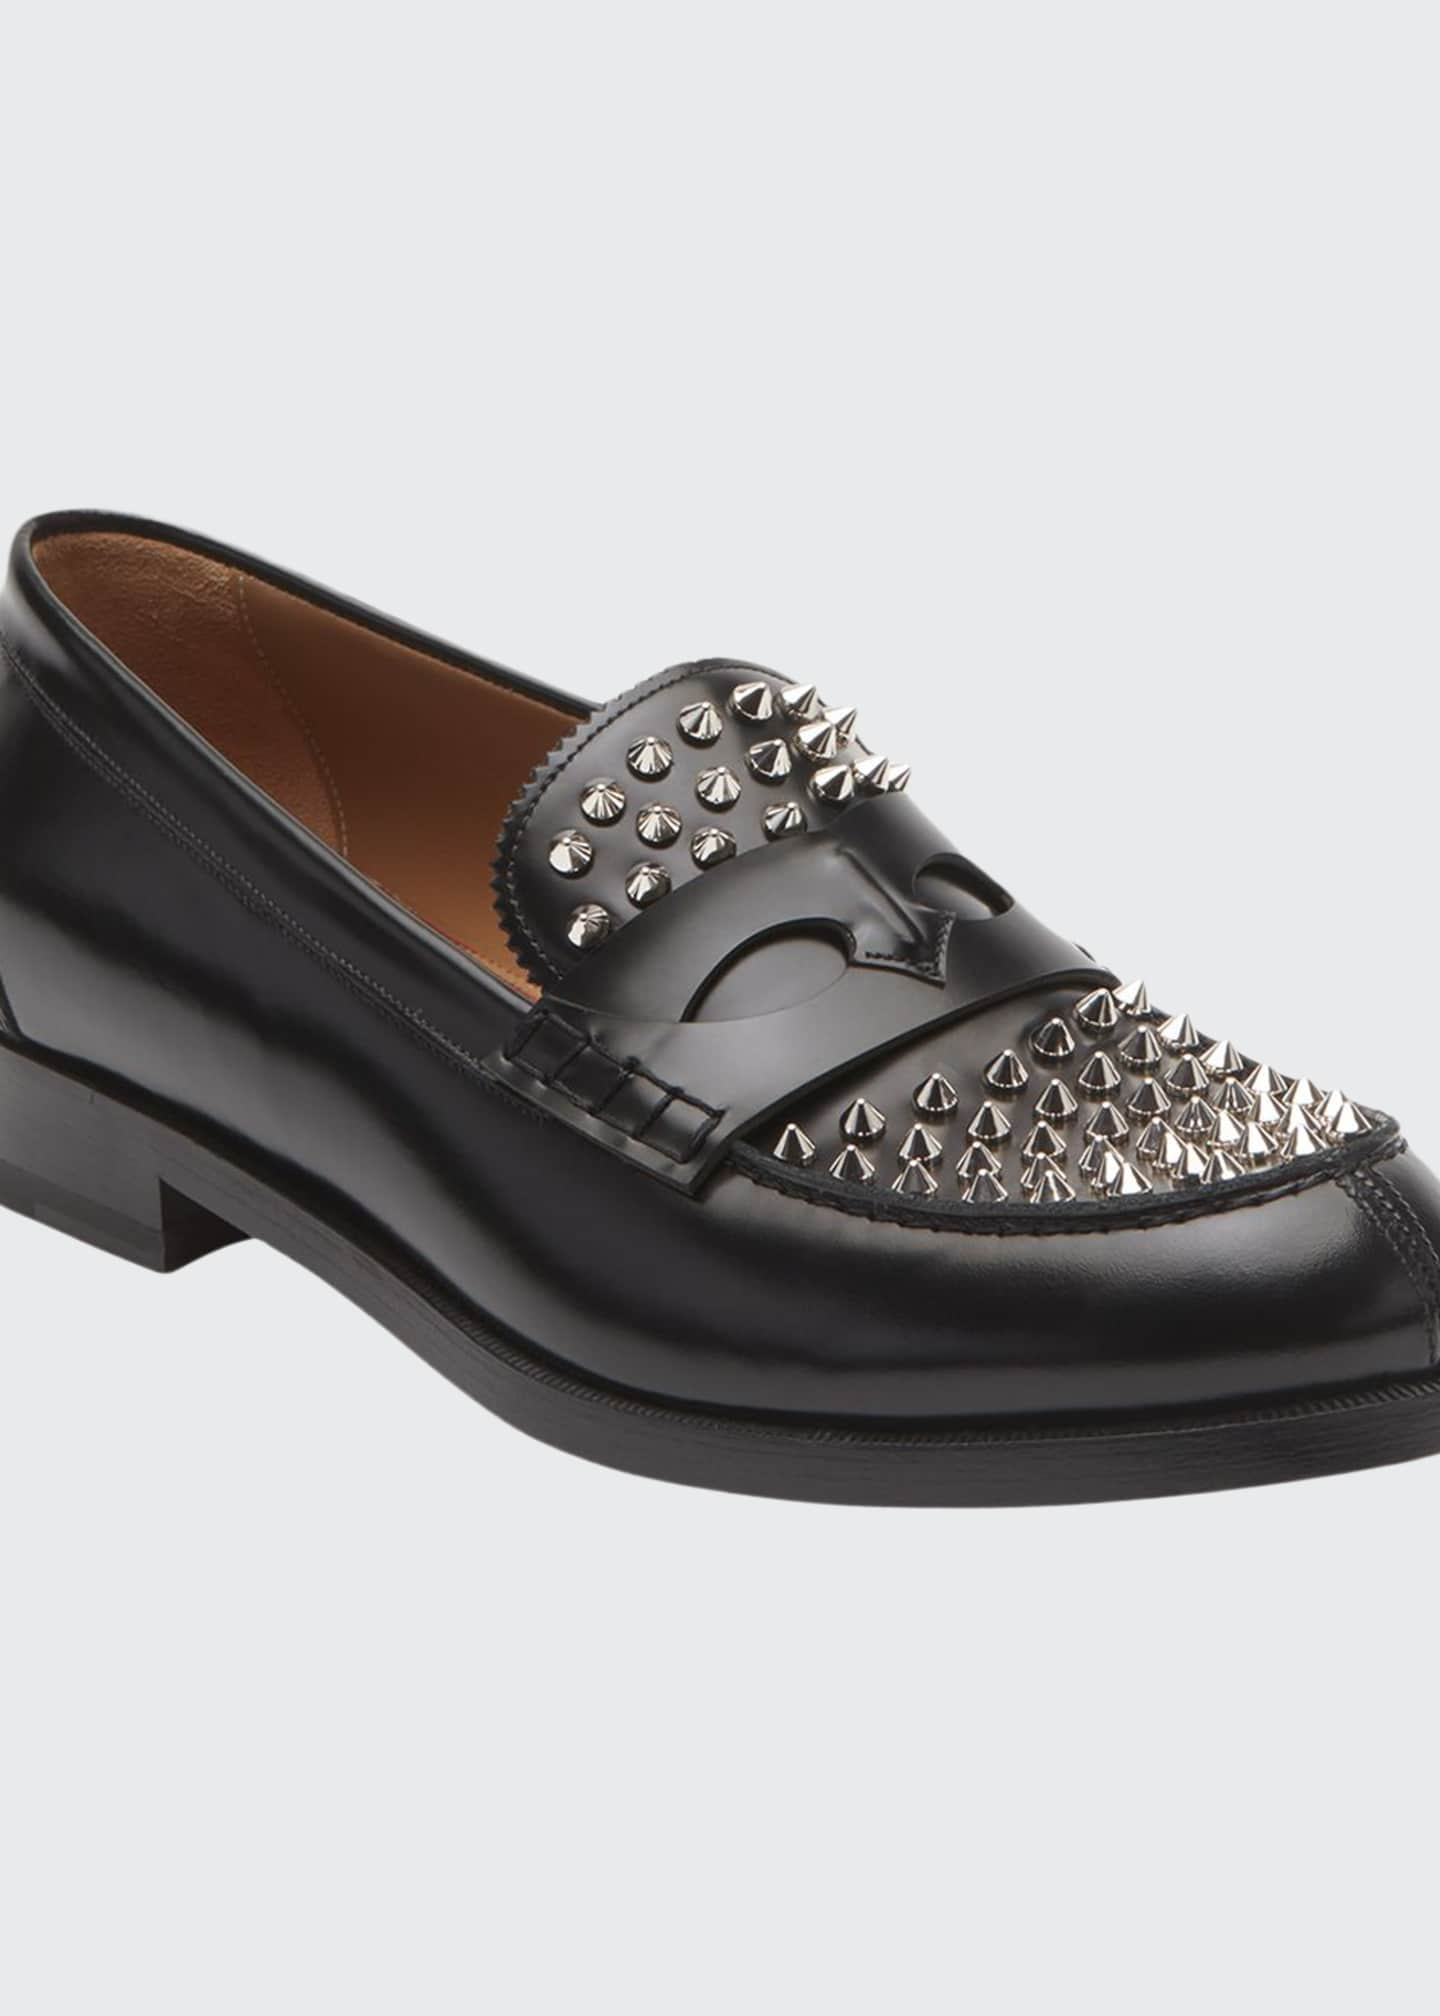 Christian Louboutin Men's Spiked Leather Penny Loafers